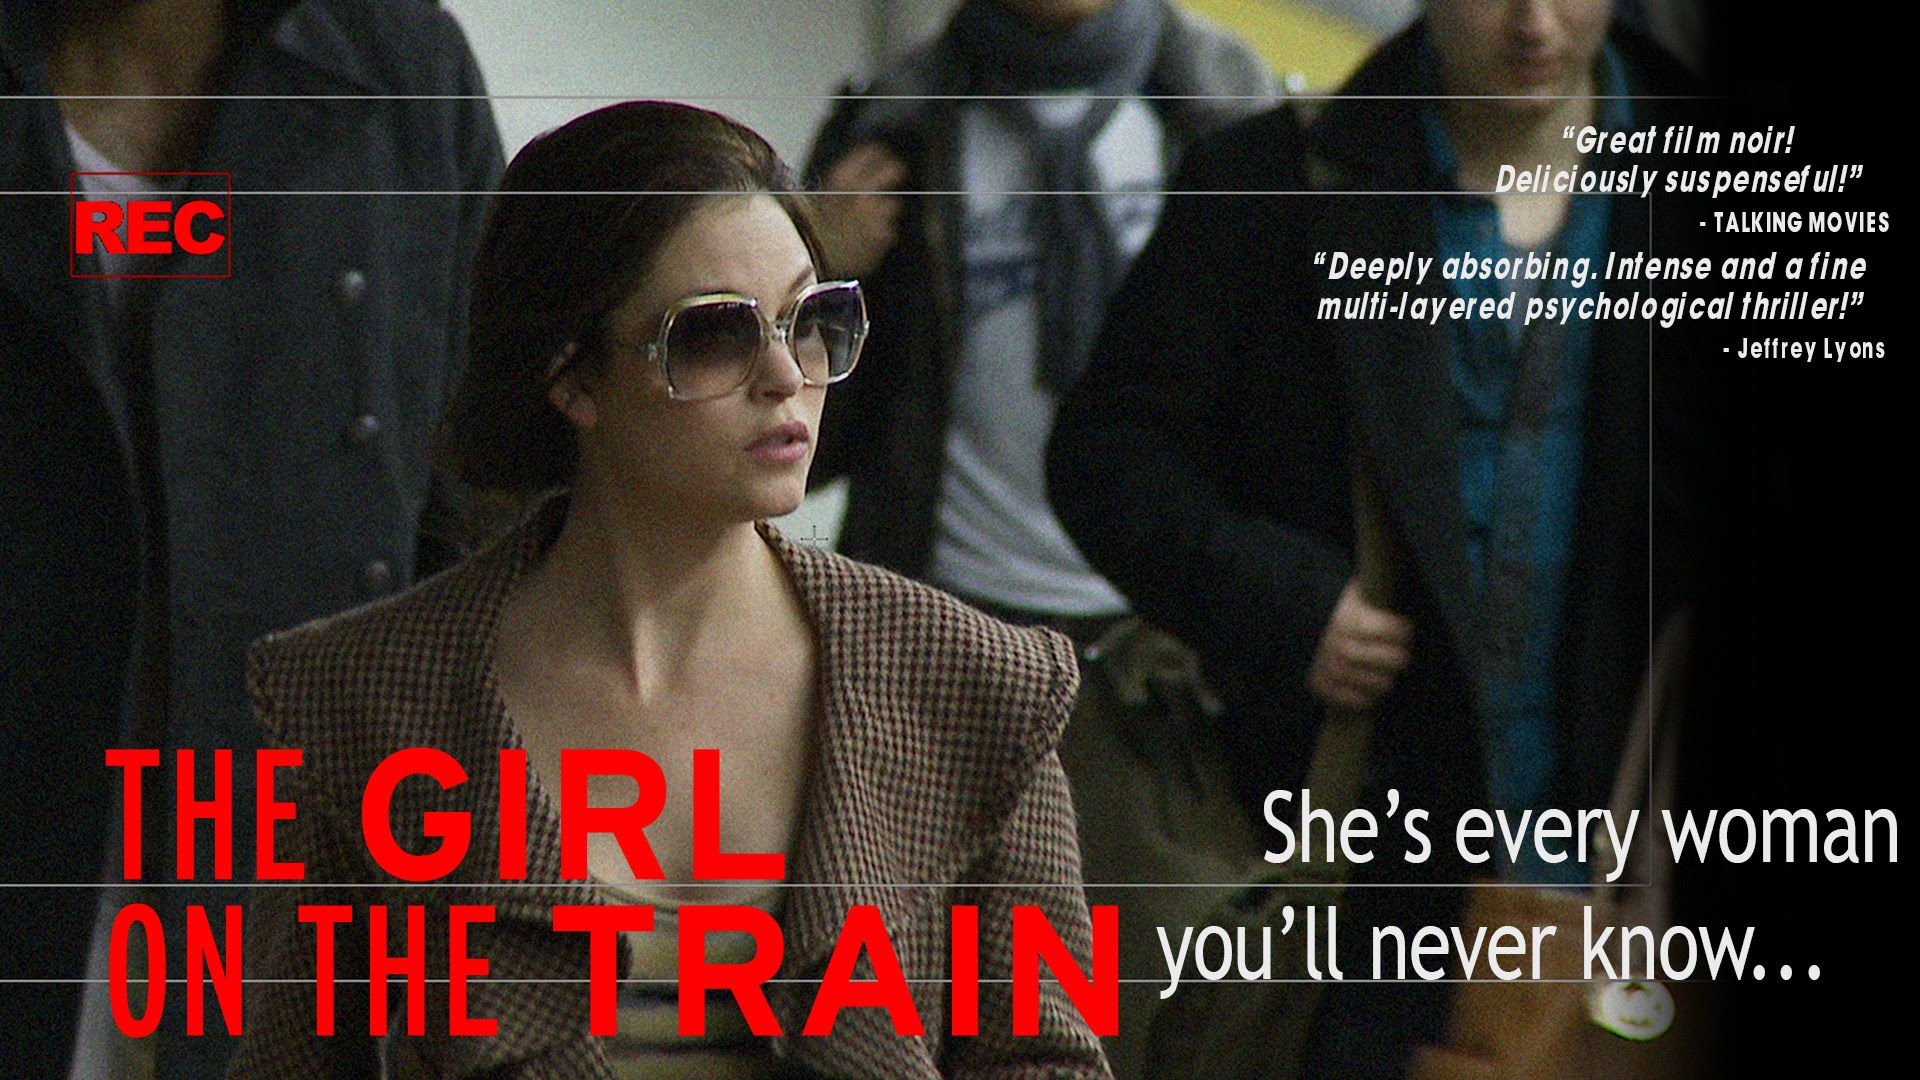 The Girl on the Train HQ wallpapers